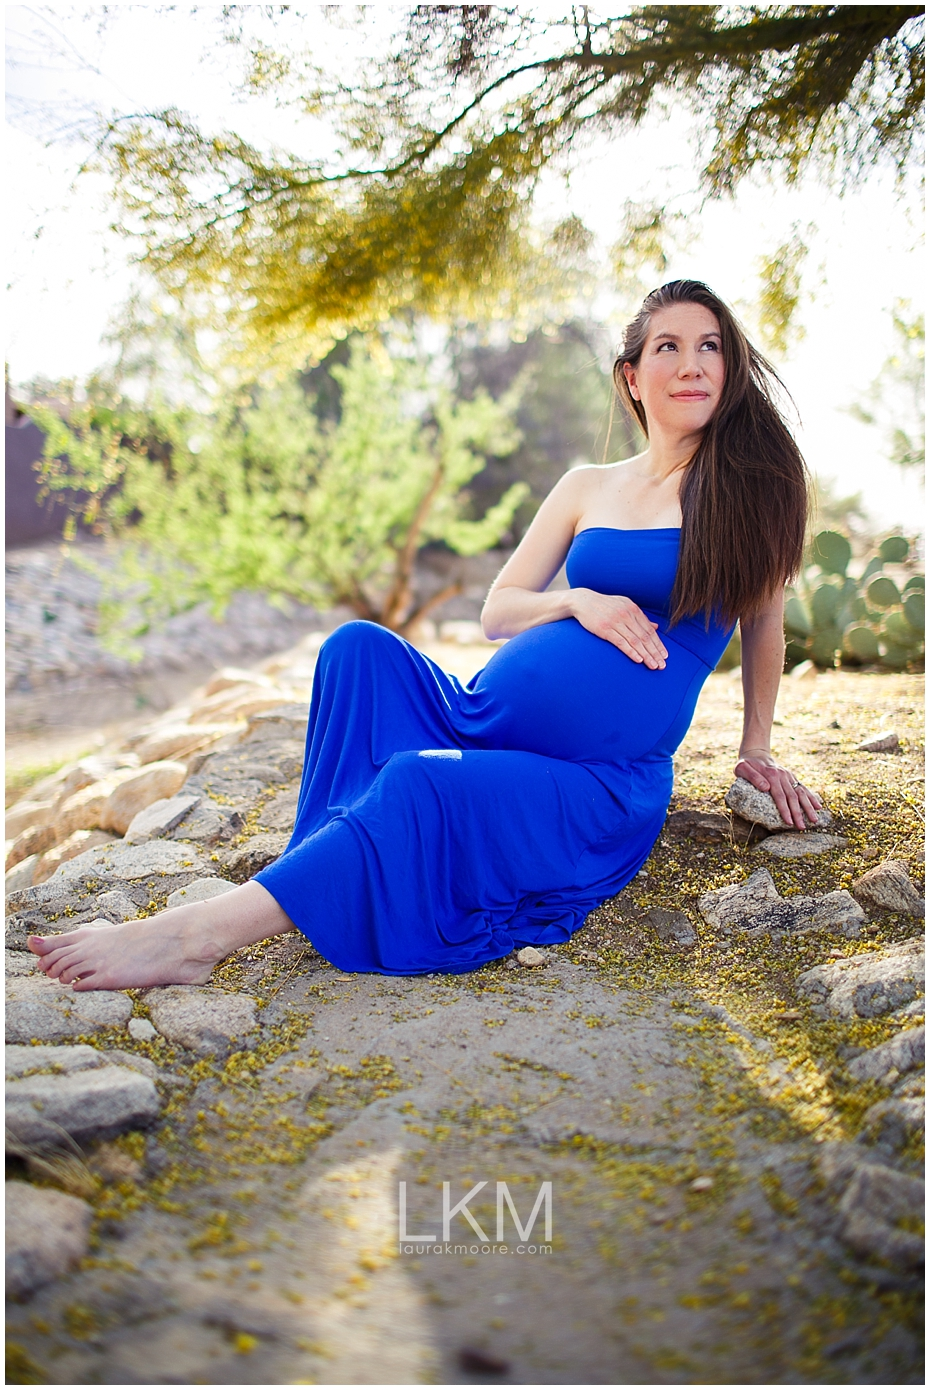 Tucon-desert-maternity-session-monique_0013.jpg